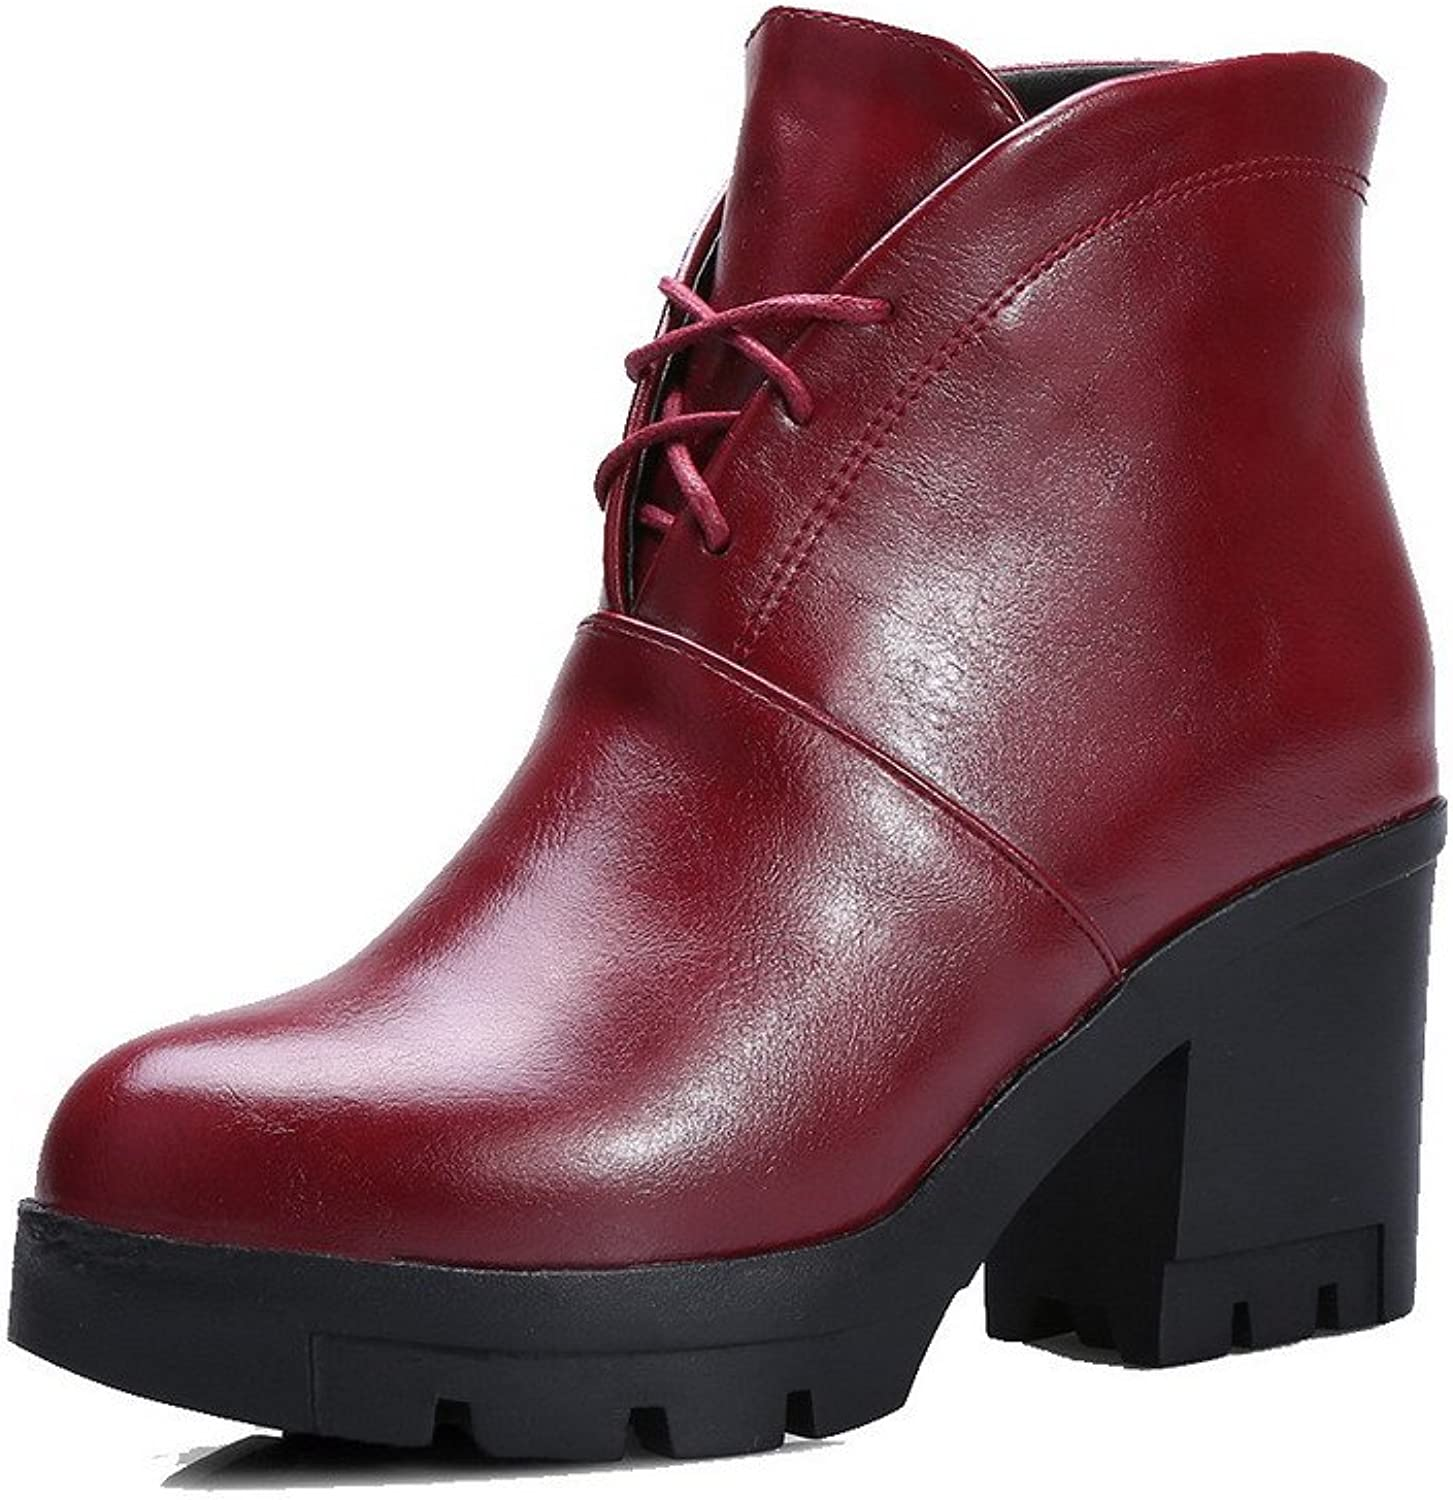 AllhqFashion Women's Soft Leather Lace-up Round Closed Toe High-Heels Low-Top Boots